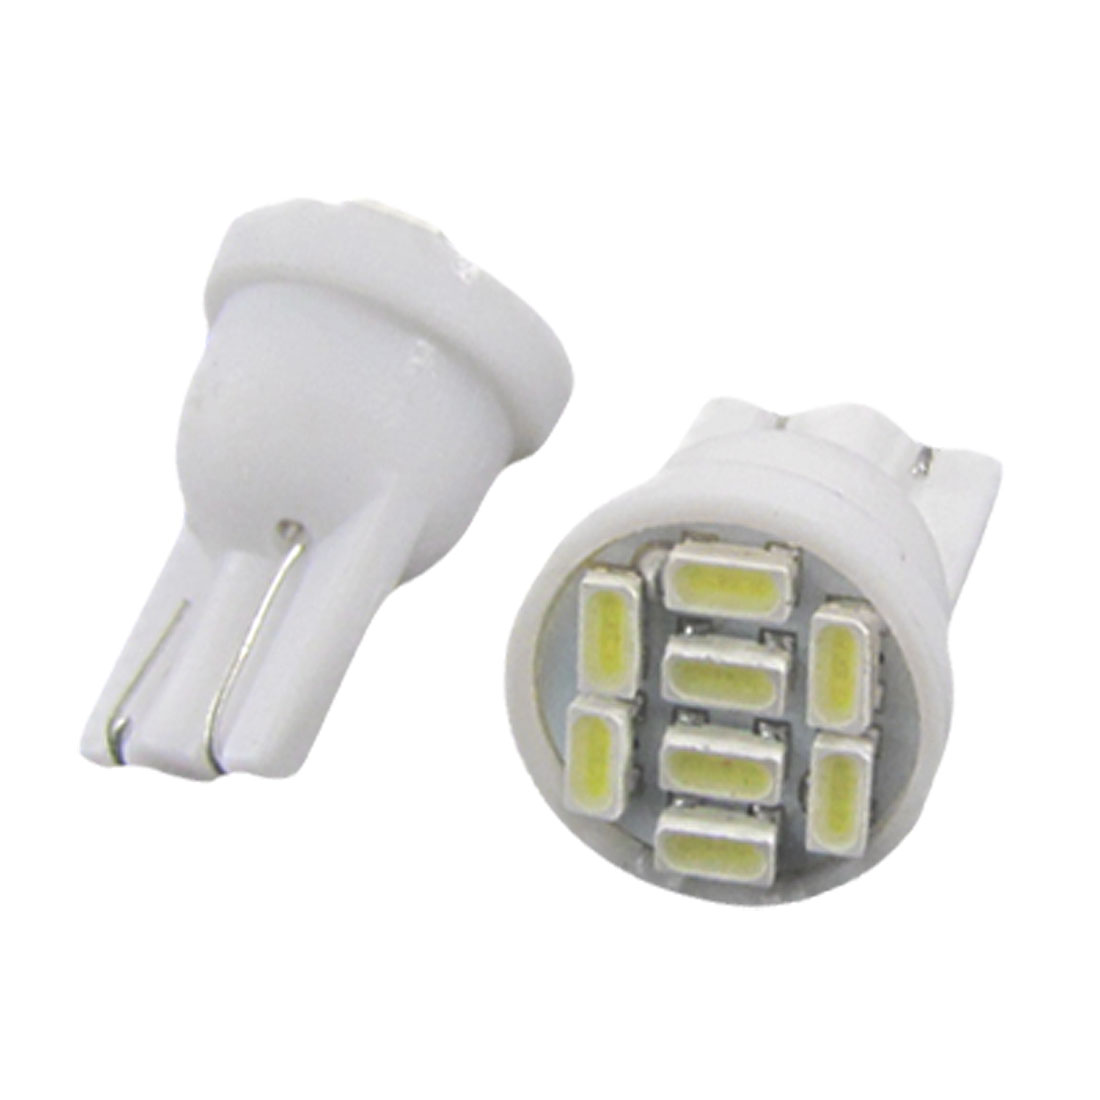 2 Pcs Car T10 W5W 8 1206 SMD LED White Wedge Sidelight Bulbs Lamp 12V